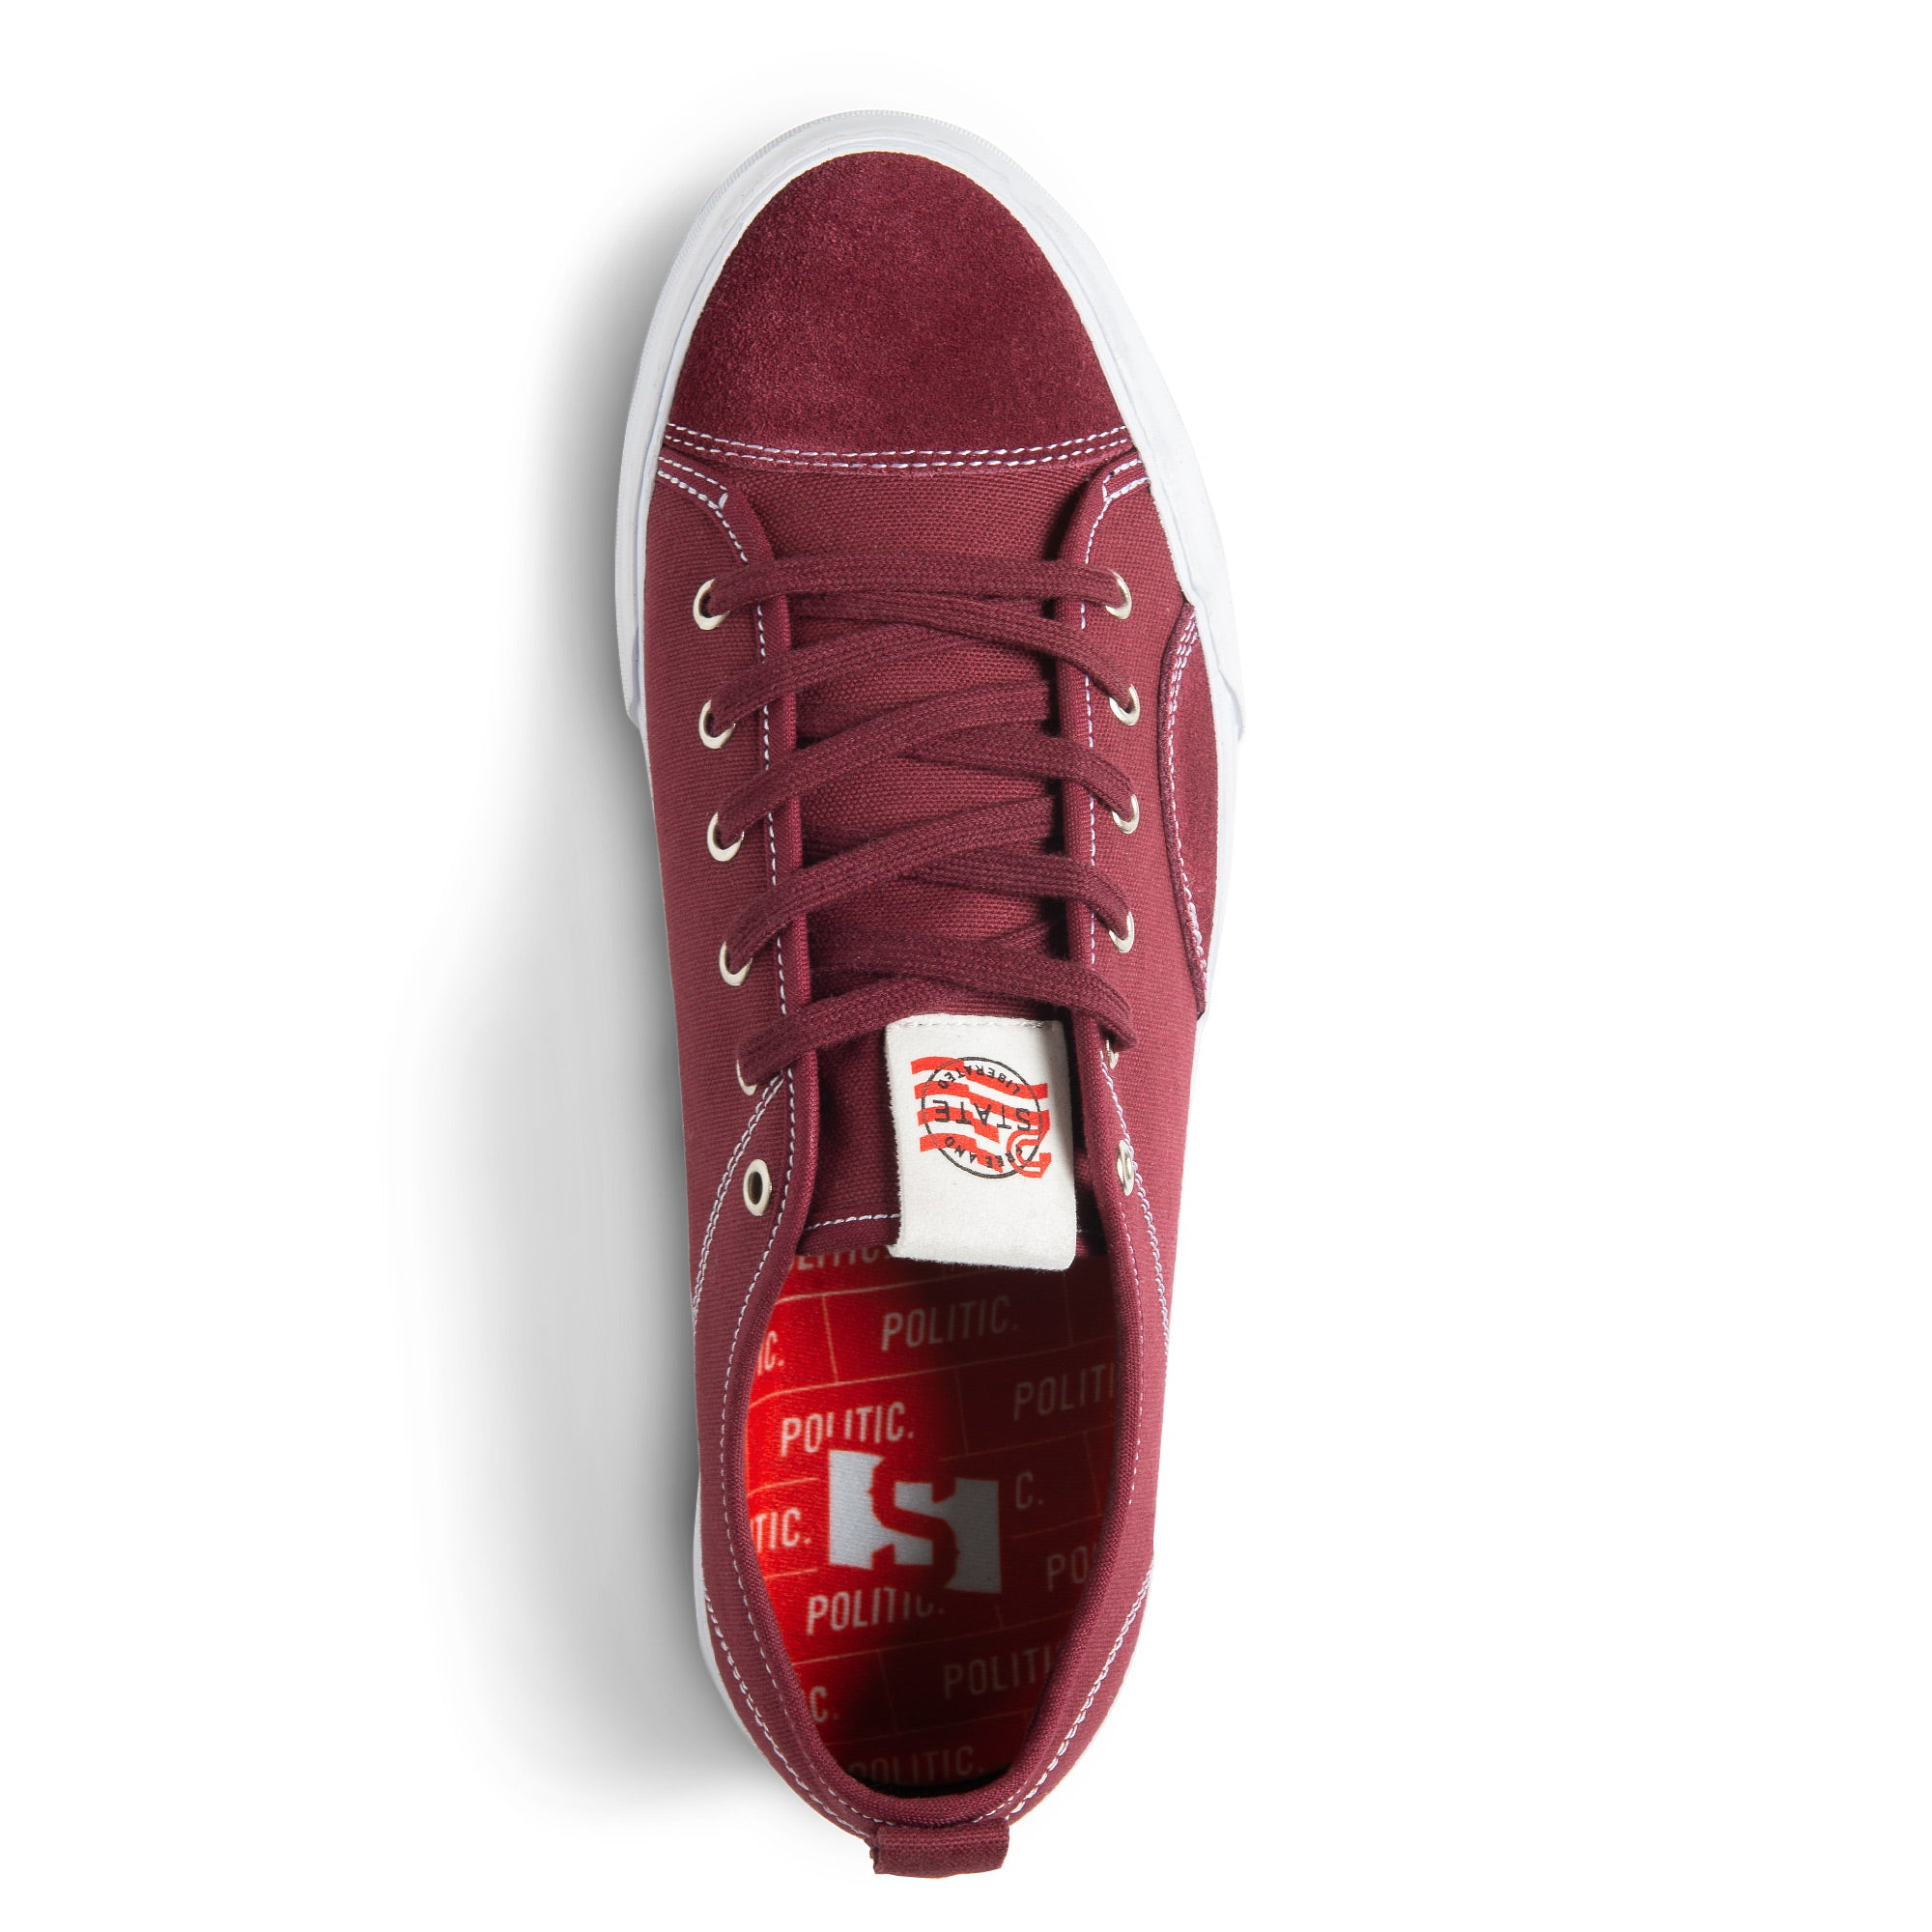 Politic X Harlem Black Cherry